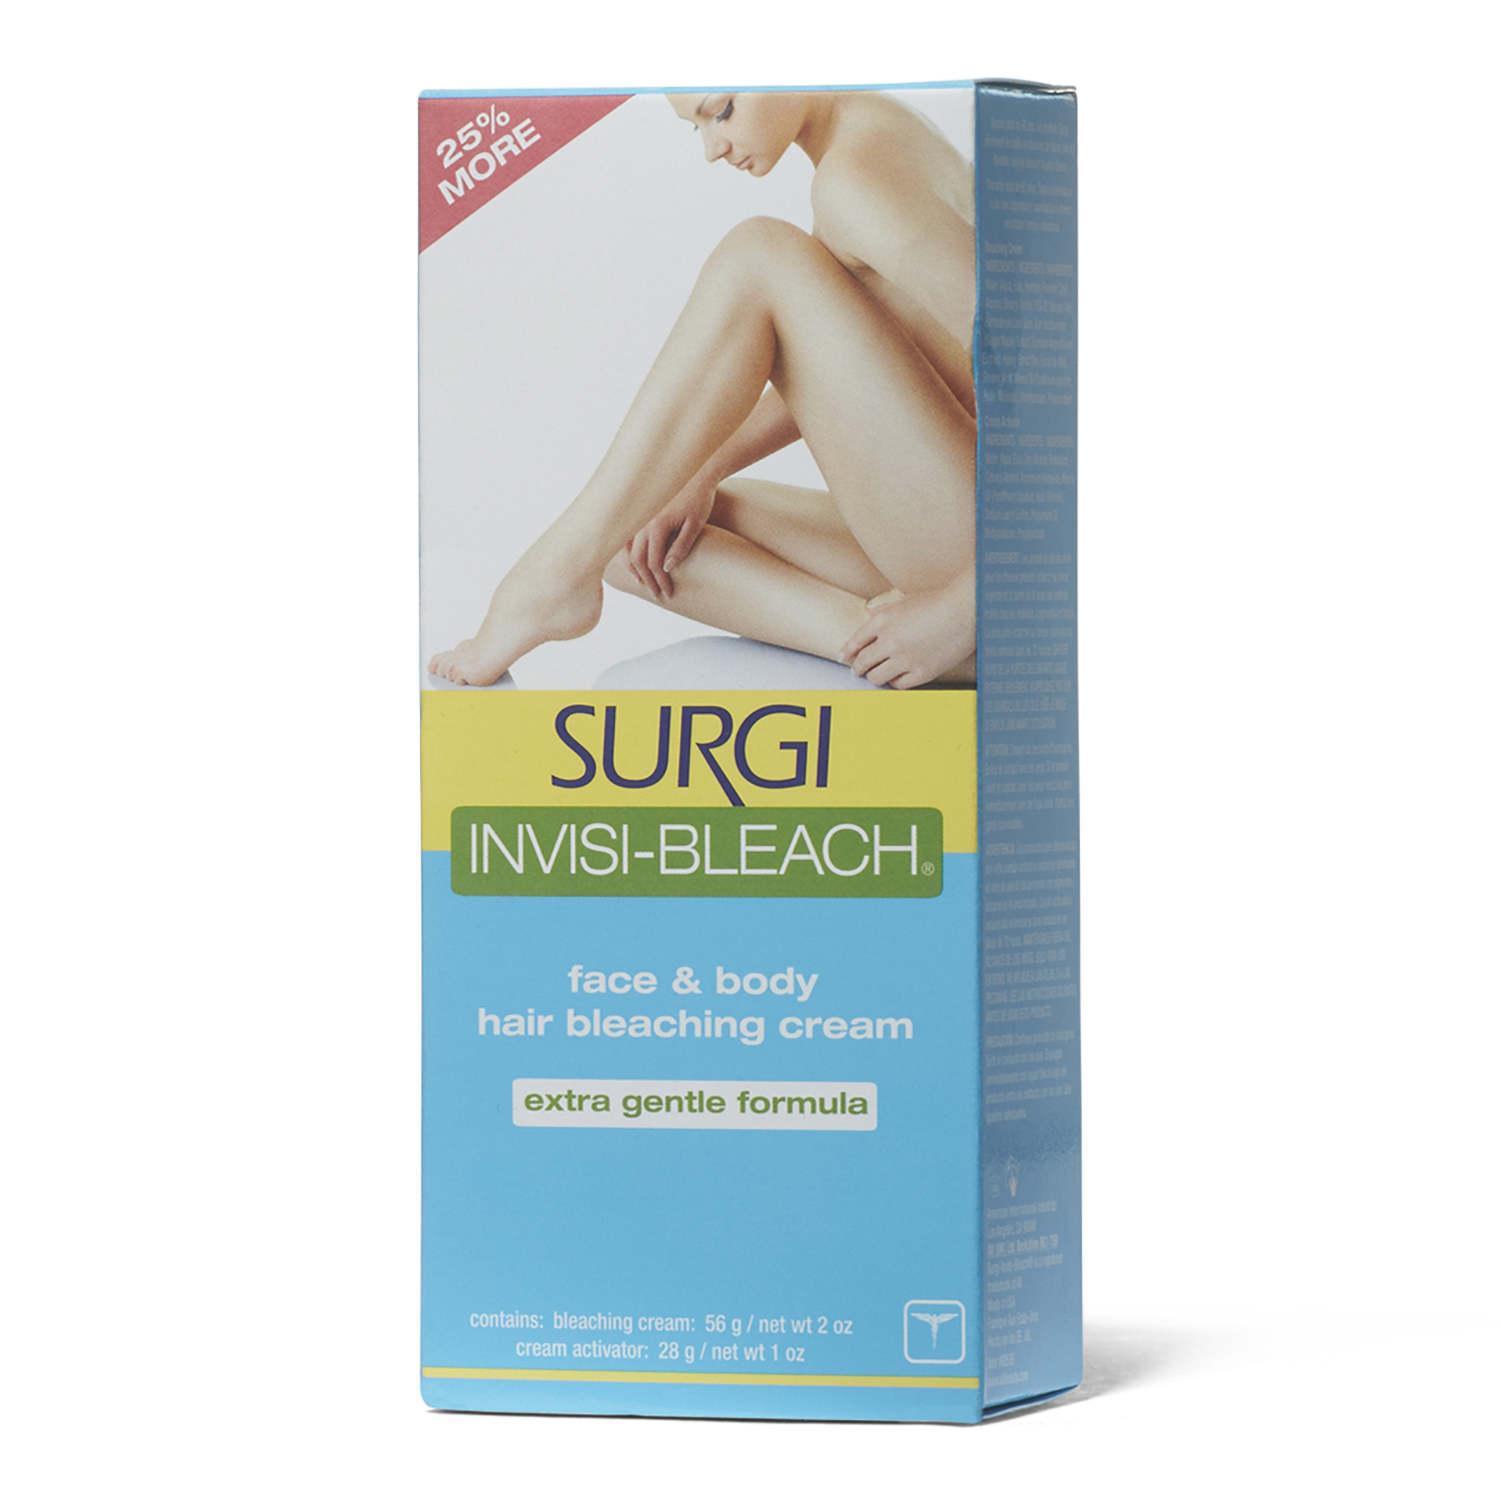 Sally Beauty coupon: Surgi Invisi-Bleach